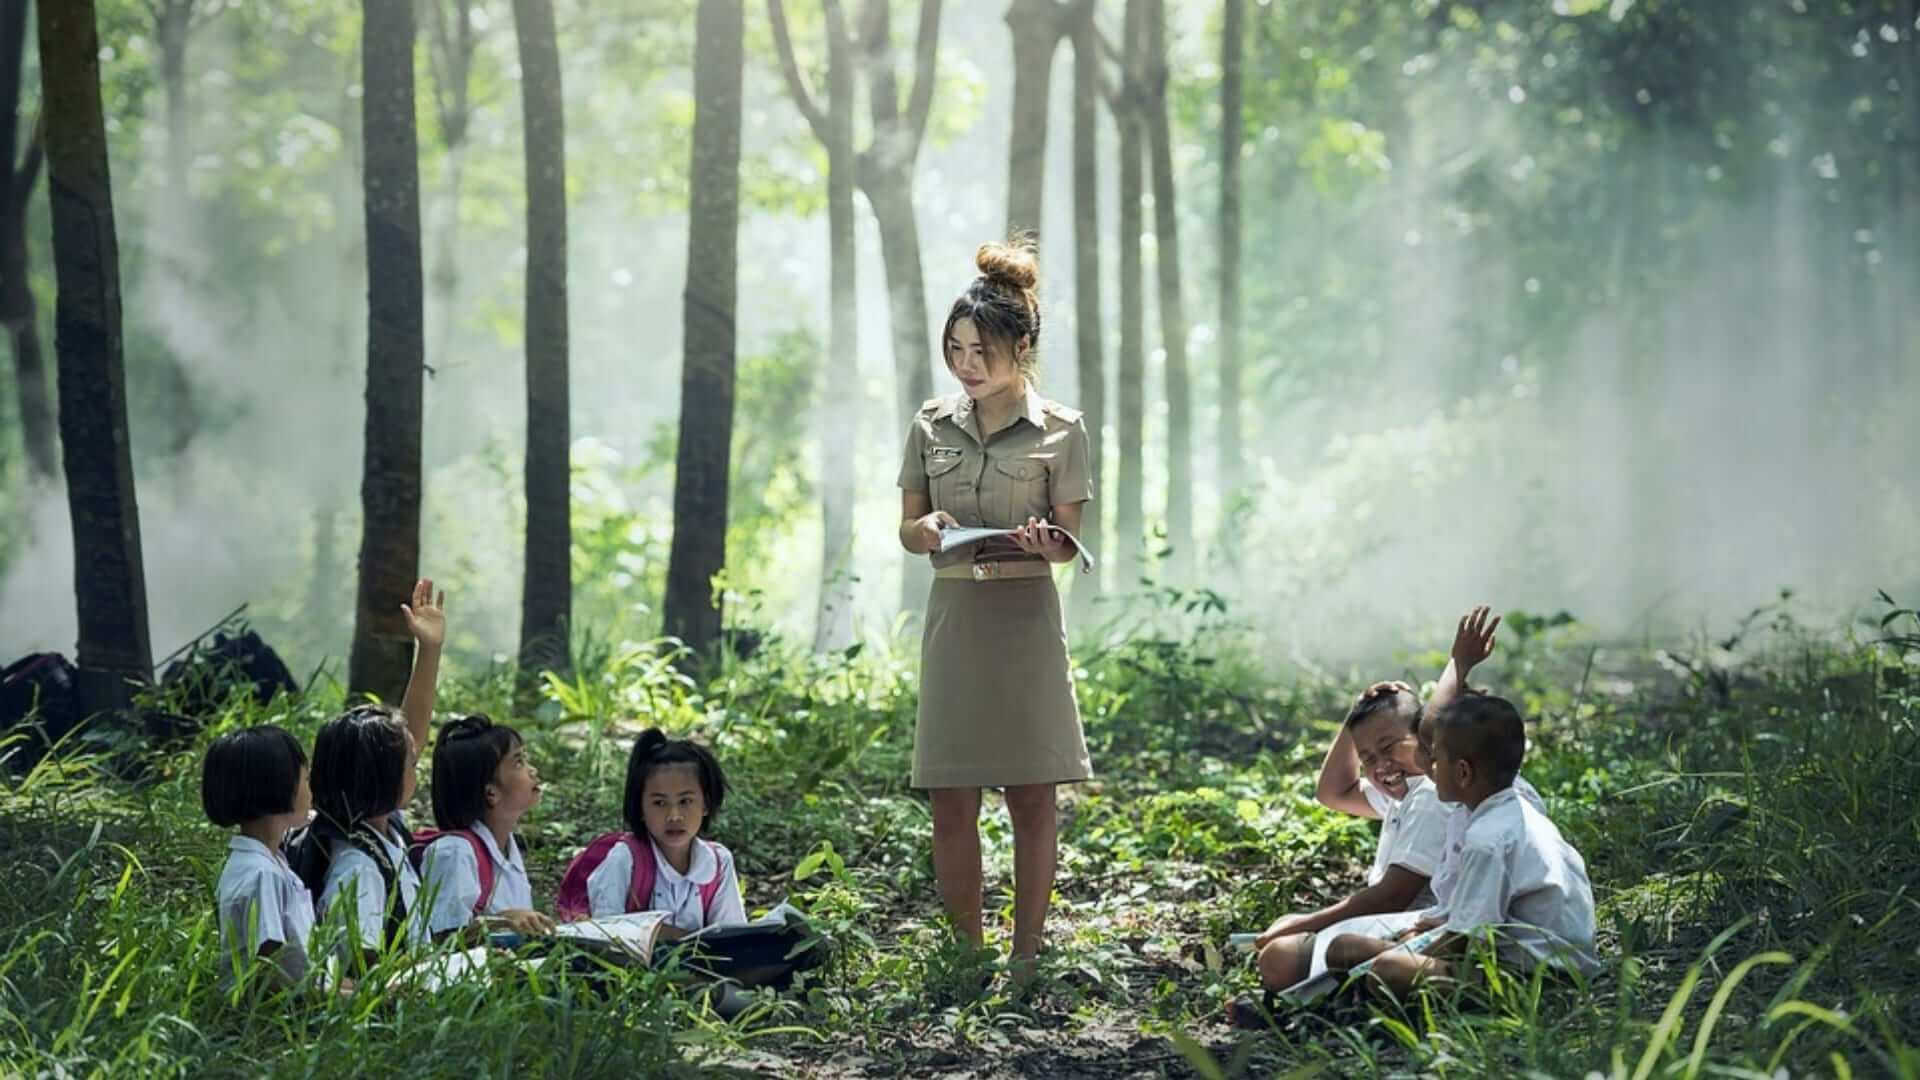 A woman is teaching children sitting in a cirkle in a forrest in Asia.